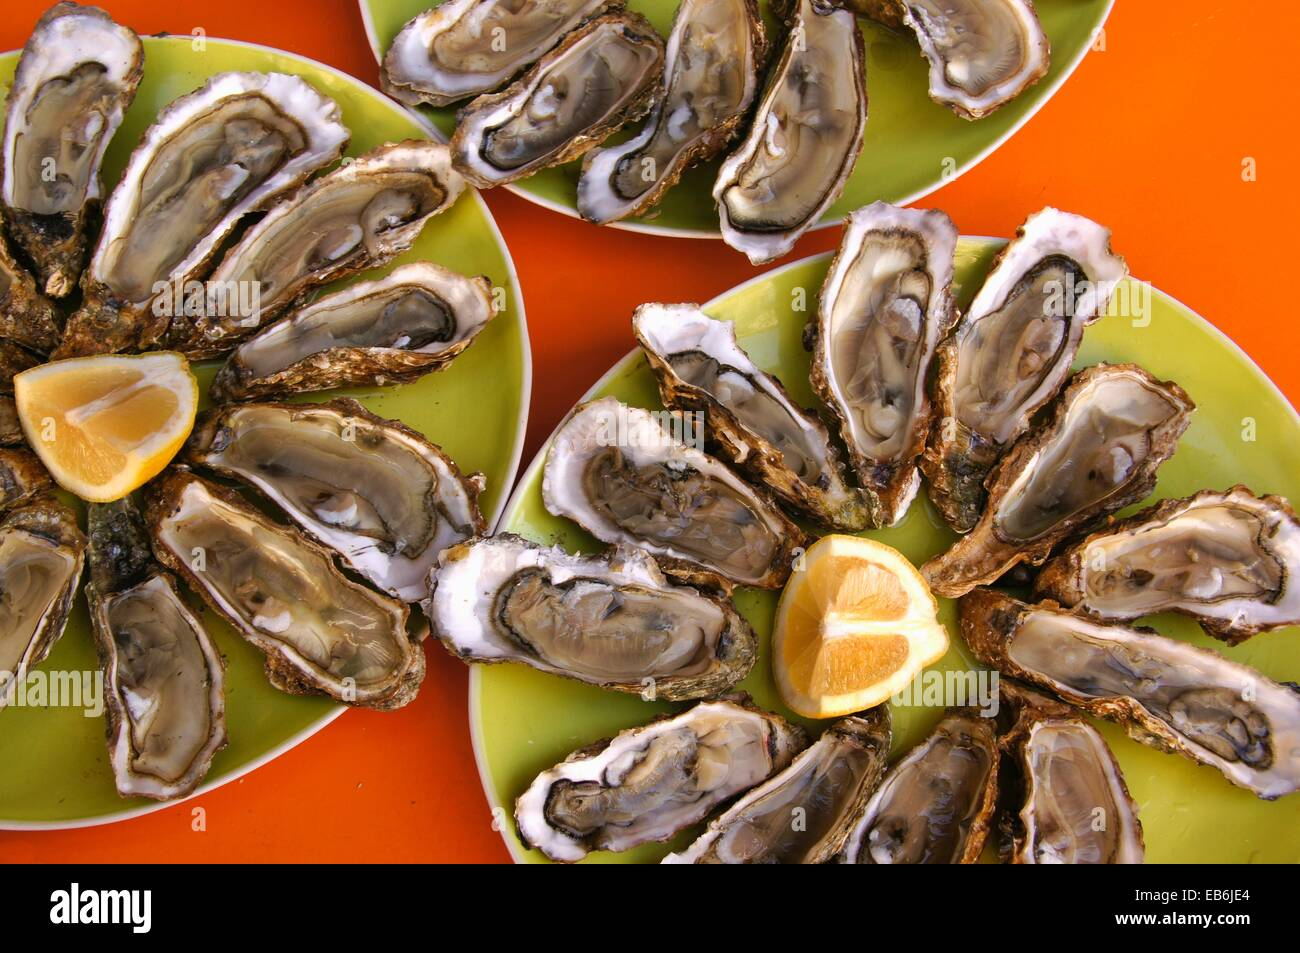 France aquitaine gironde food huitres oysters from for Aquitaine france cuisine